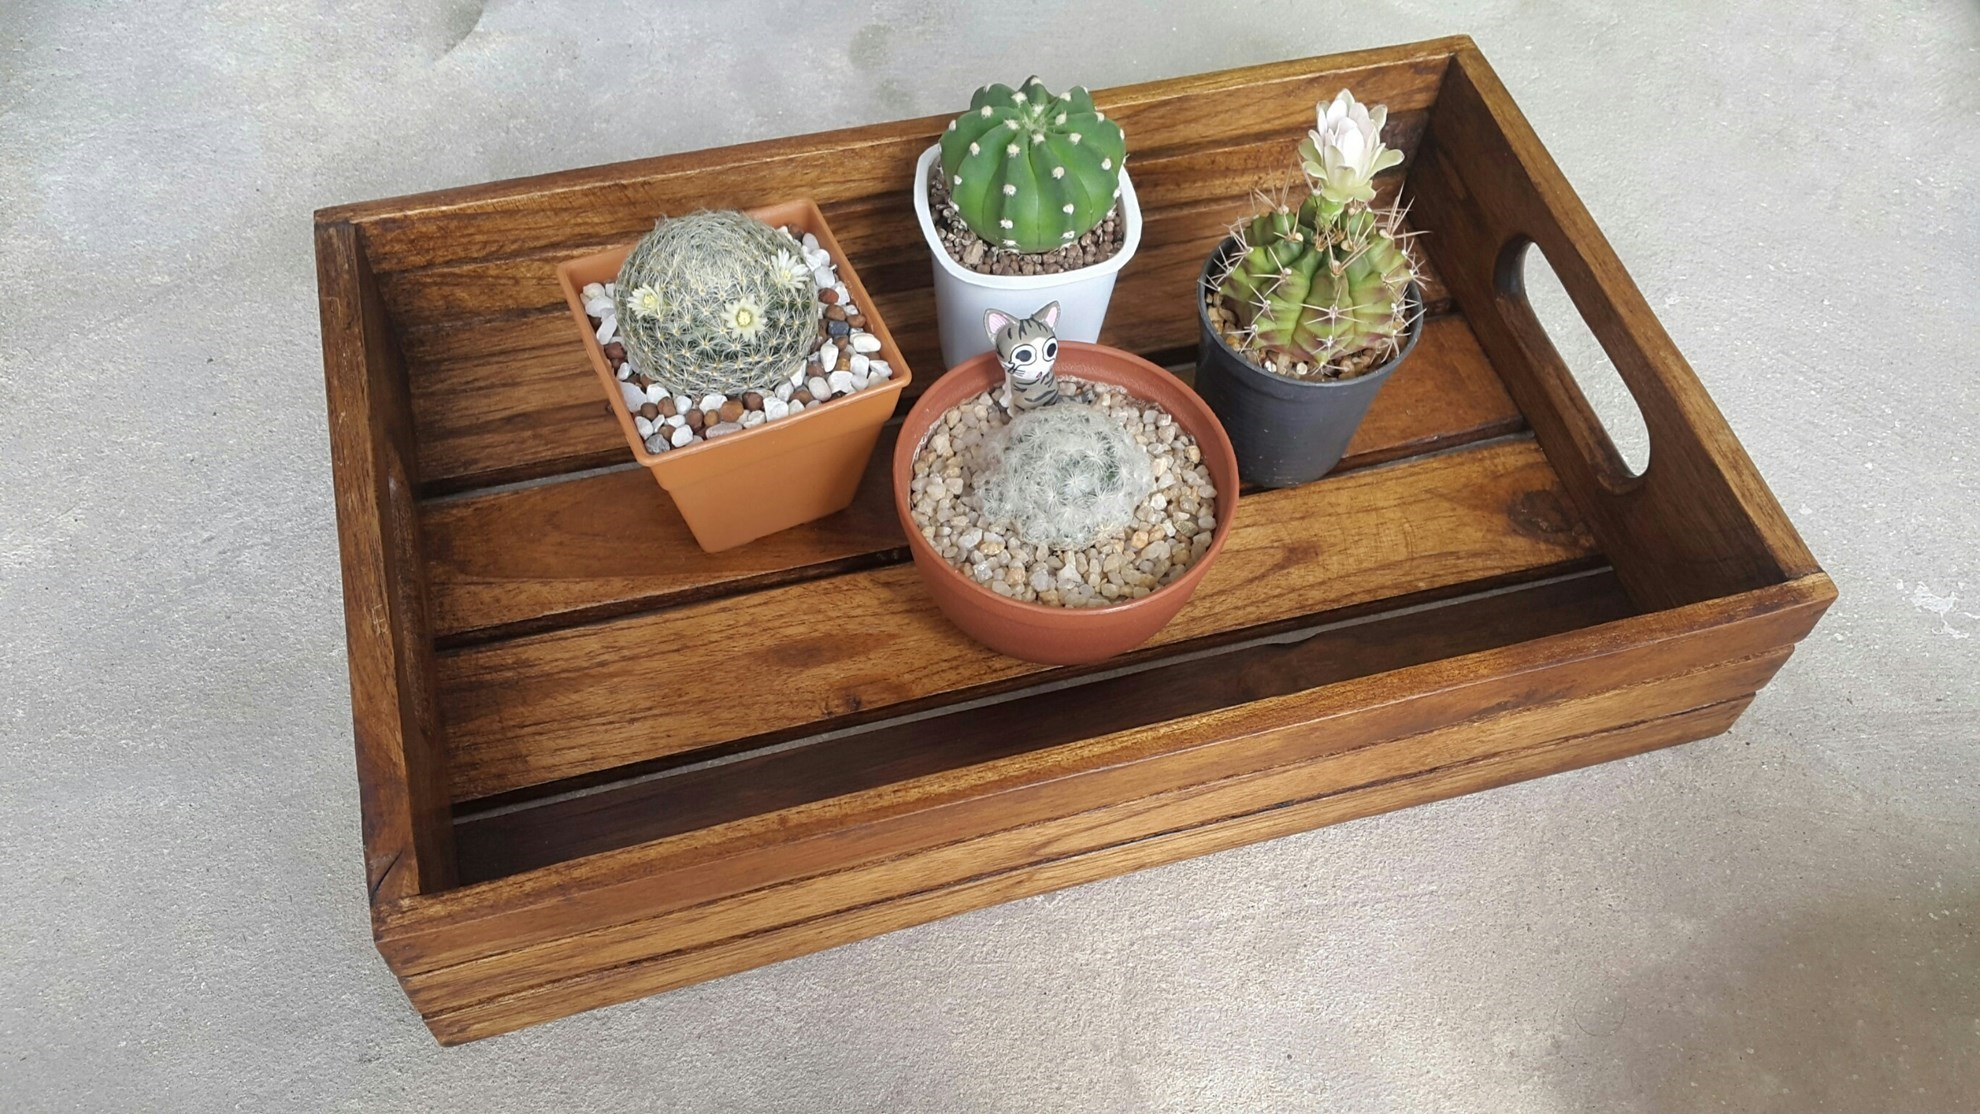 Picture of Wooden Service Tray for Home and Garden, Rectangular Oak Finish